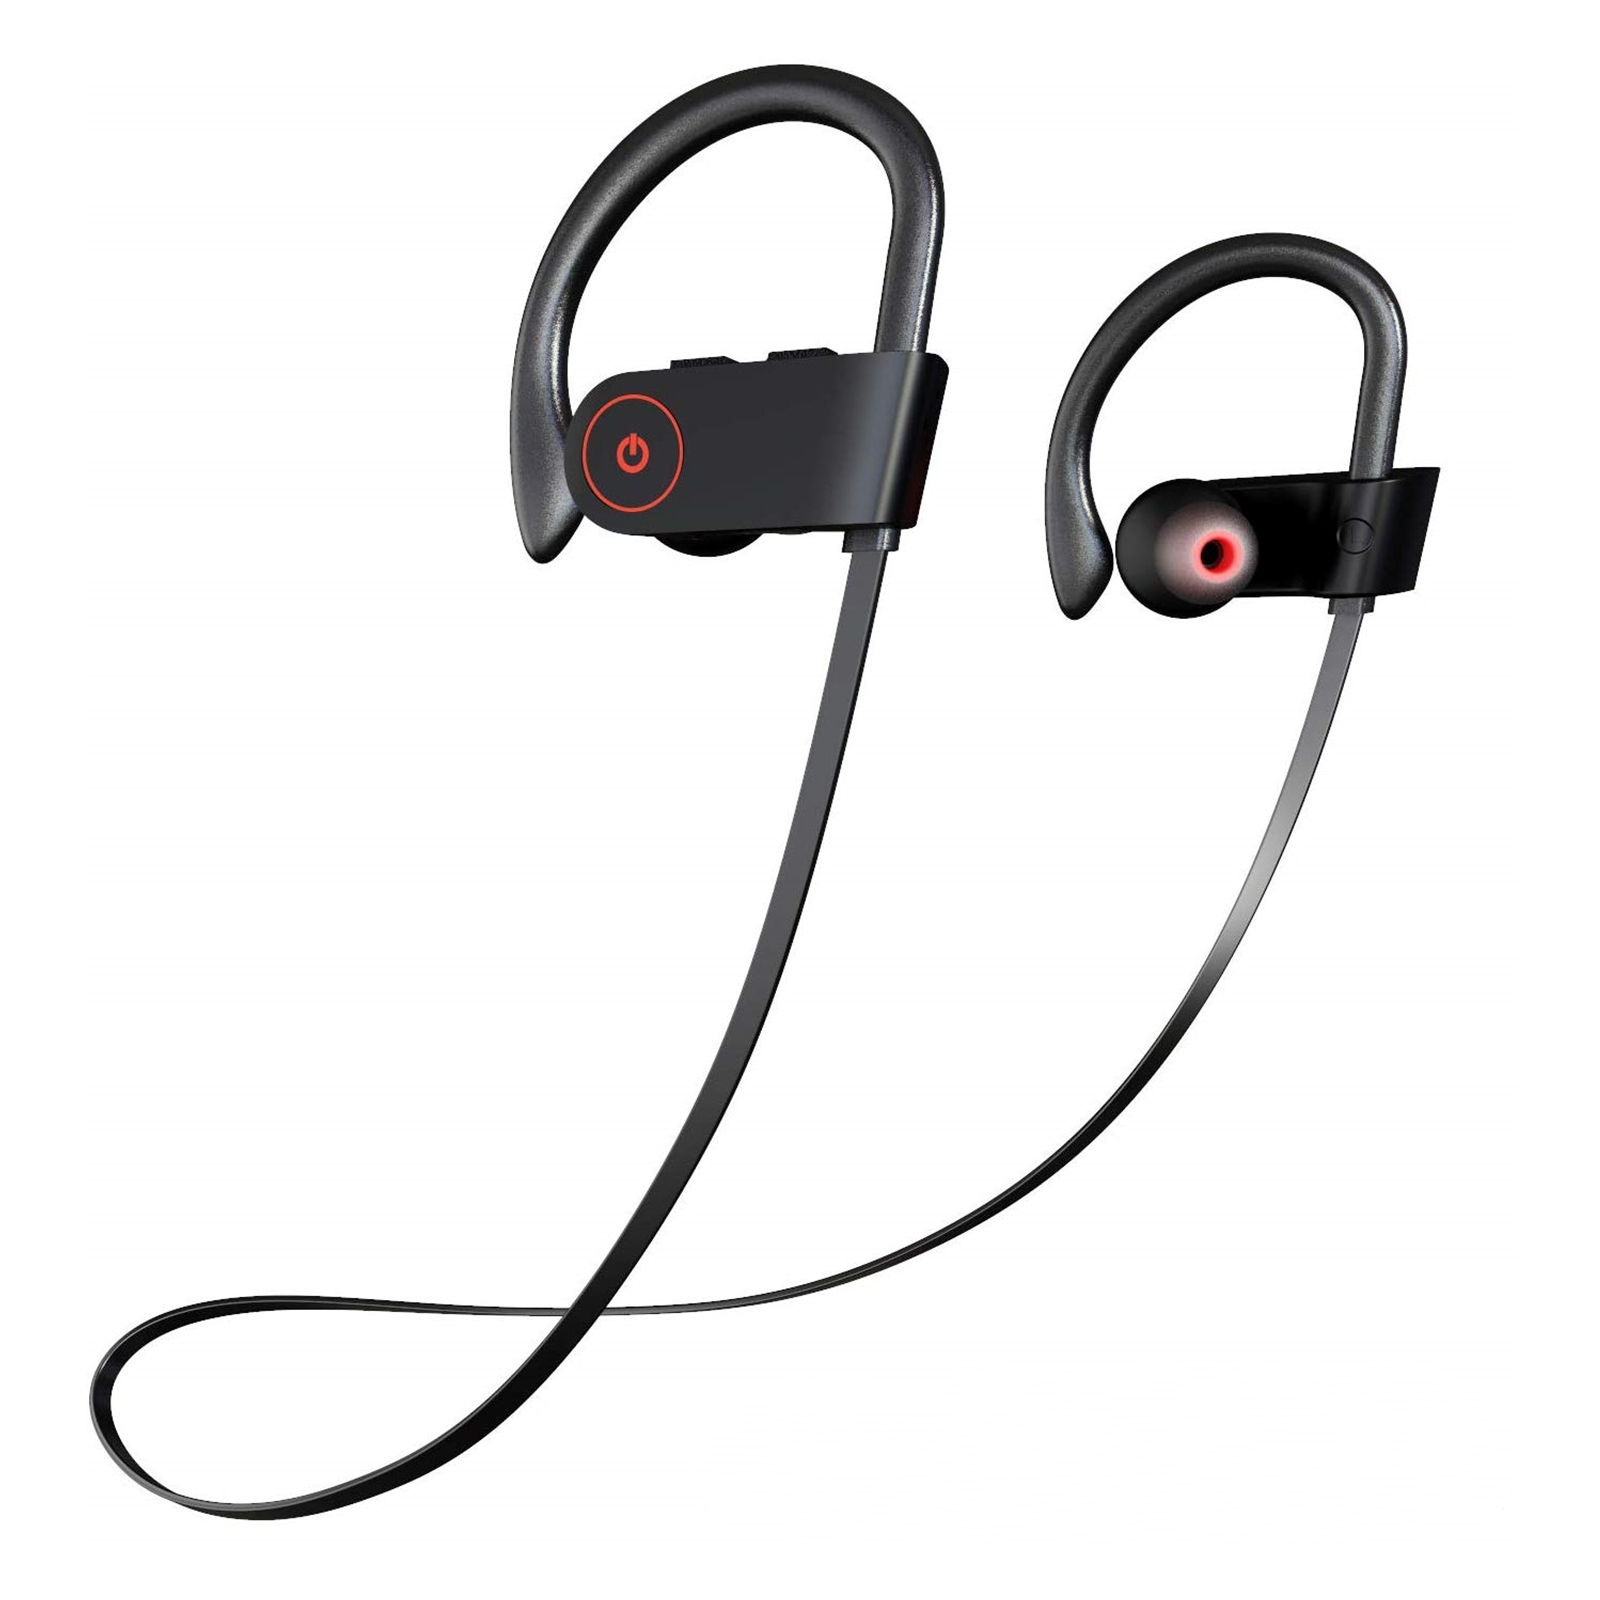 Wireless Bluetooth Headphones Wireless Earphones Running Sport Ipx7 Waterproof Earbuds With Bluetooth 4 1csr 7 9 Hours Battery Noise Cancelling Mic Stereo Earbuds Workout For Iphone Android Walmart Com Walmart Com